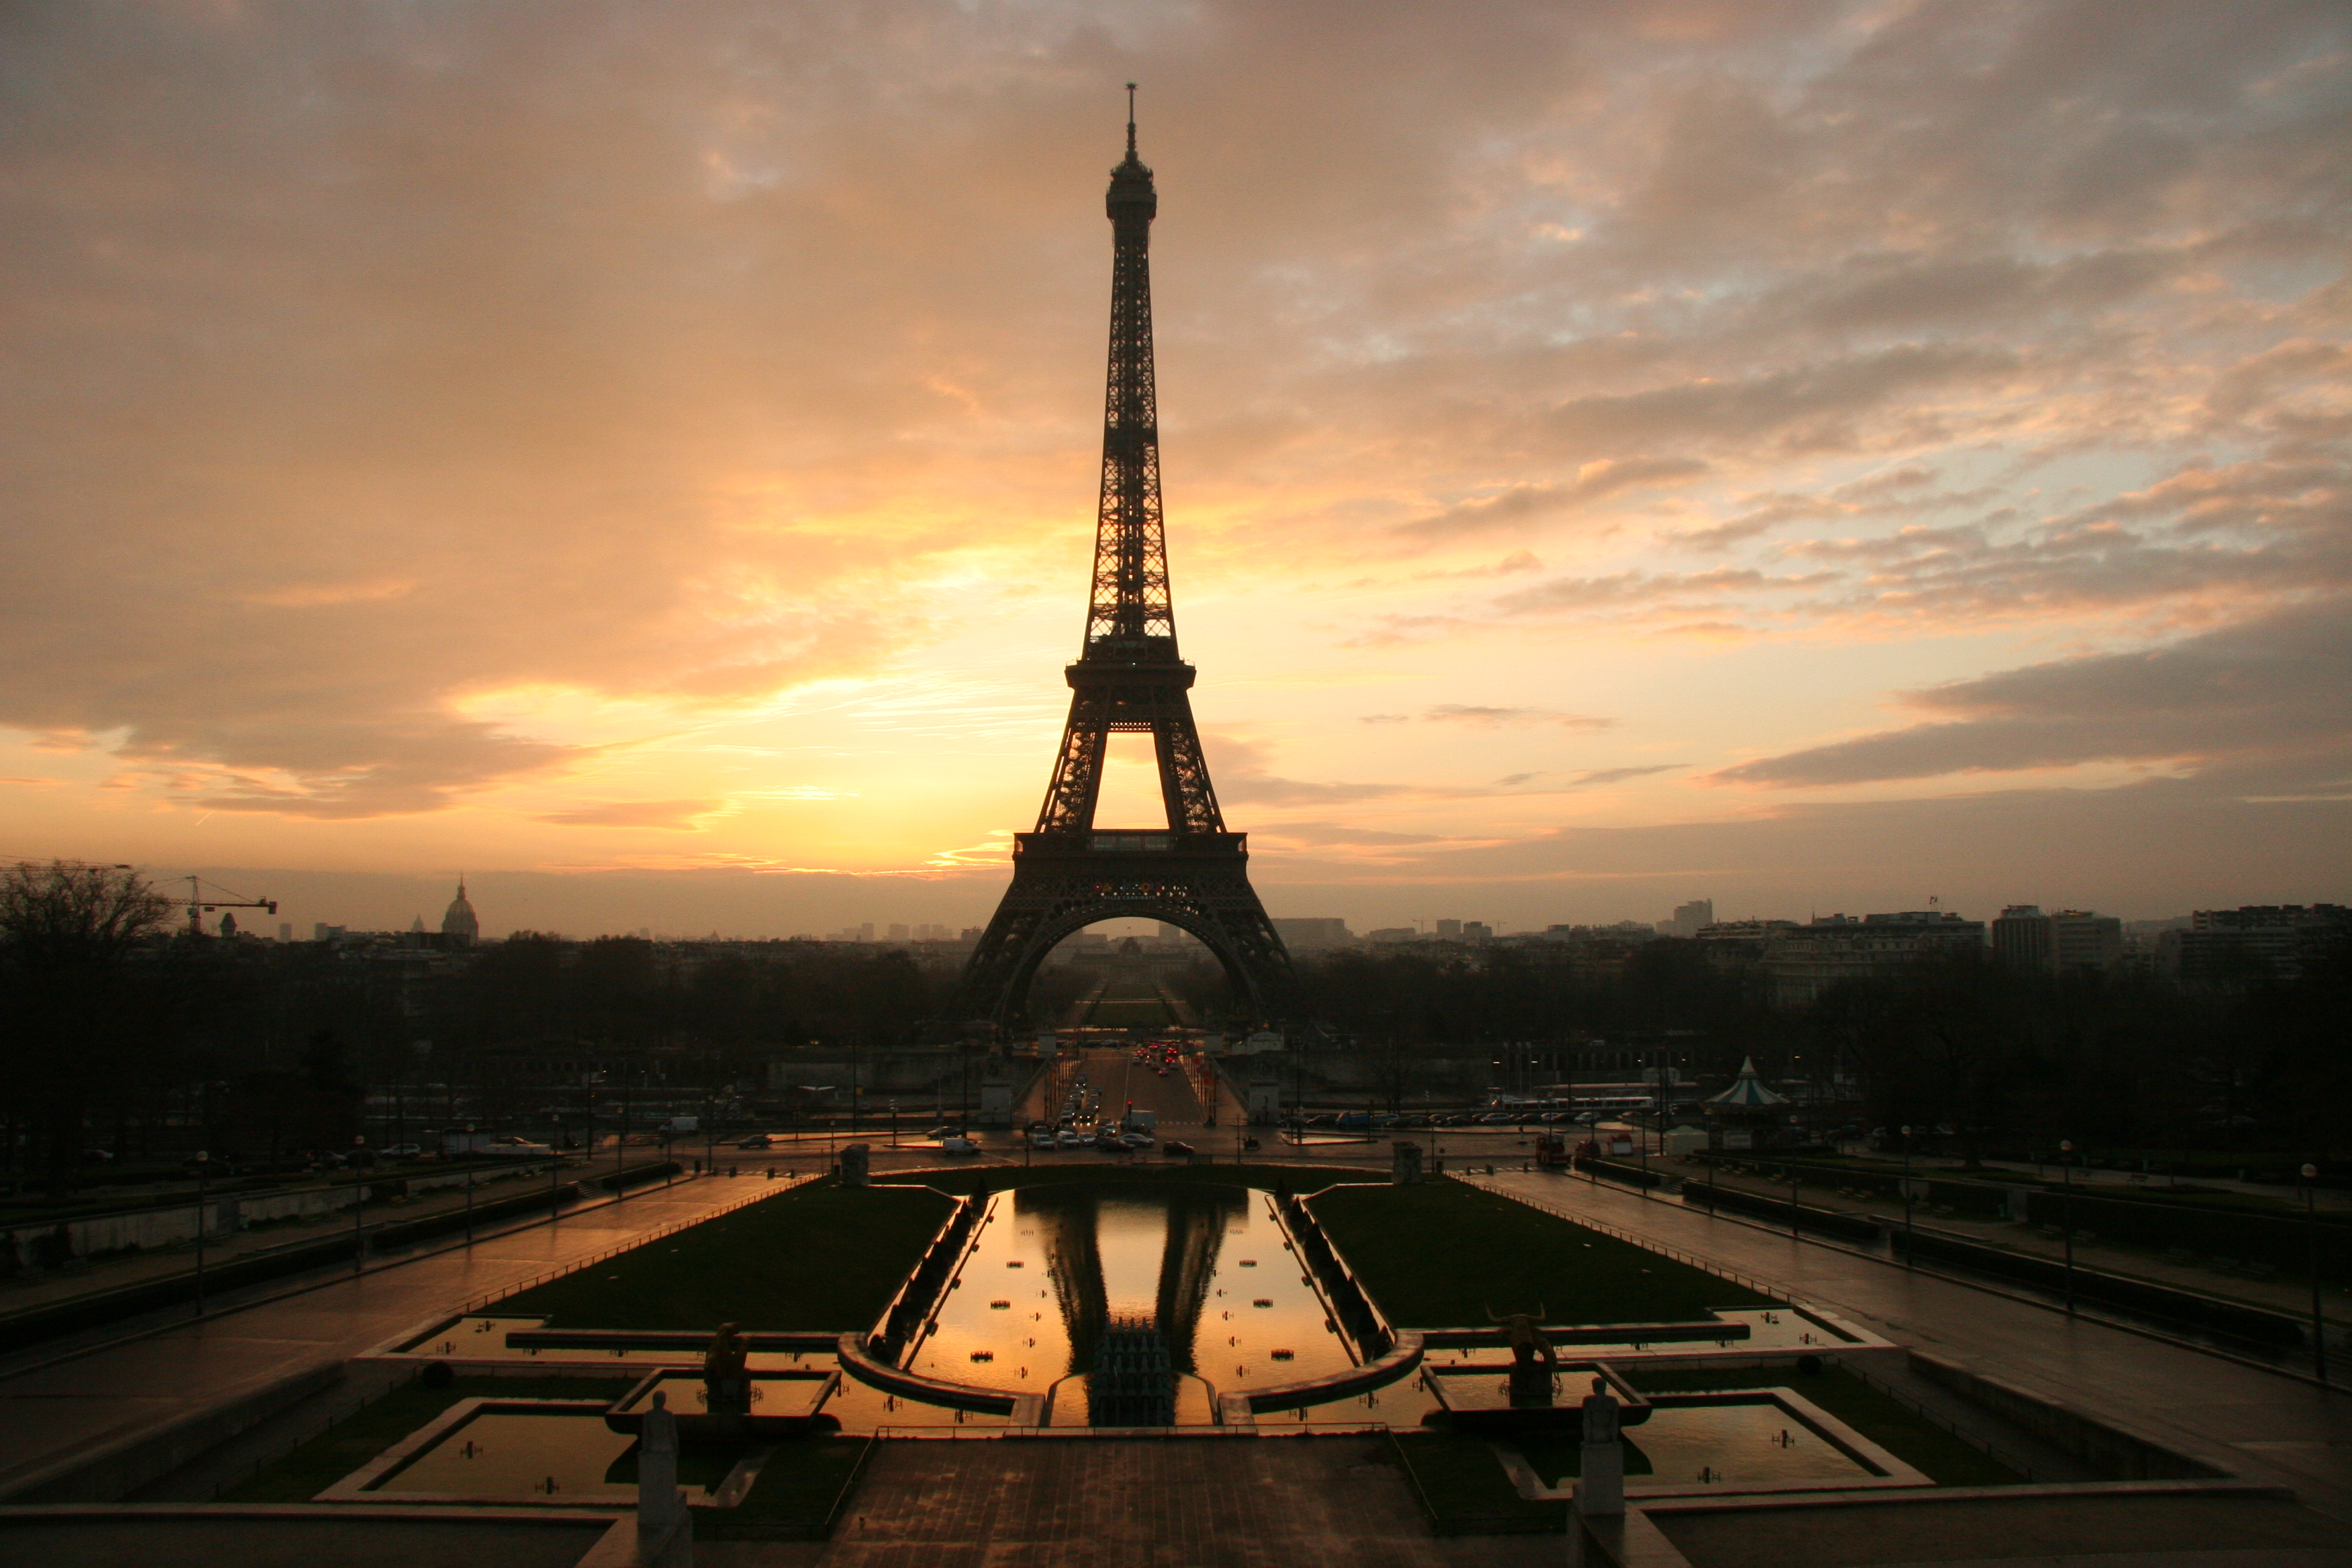 https://upload.wikimedia.org/wikipedia/commons/f/f6/Eiffel_tower_at_dawn_horizontal.jpg